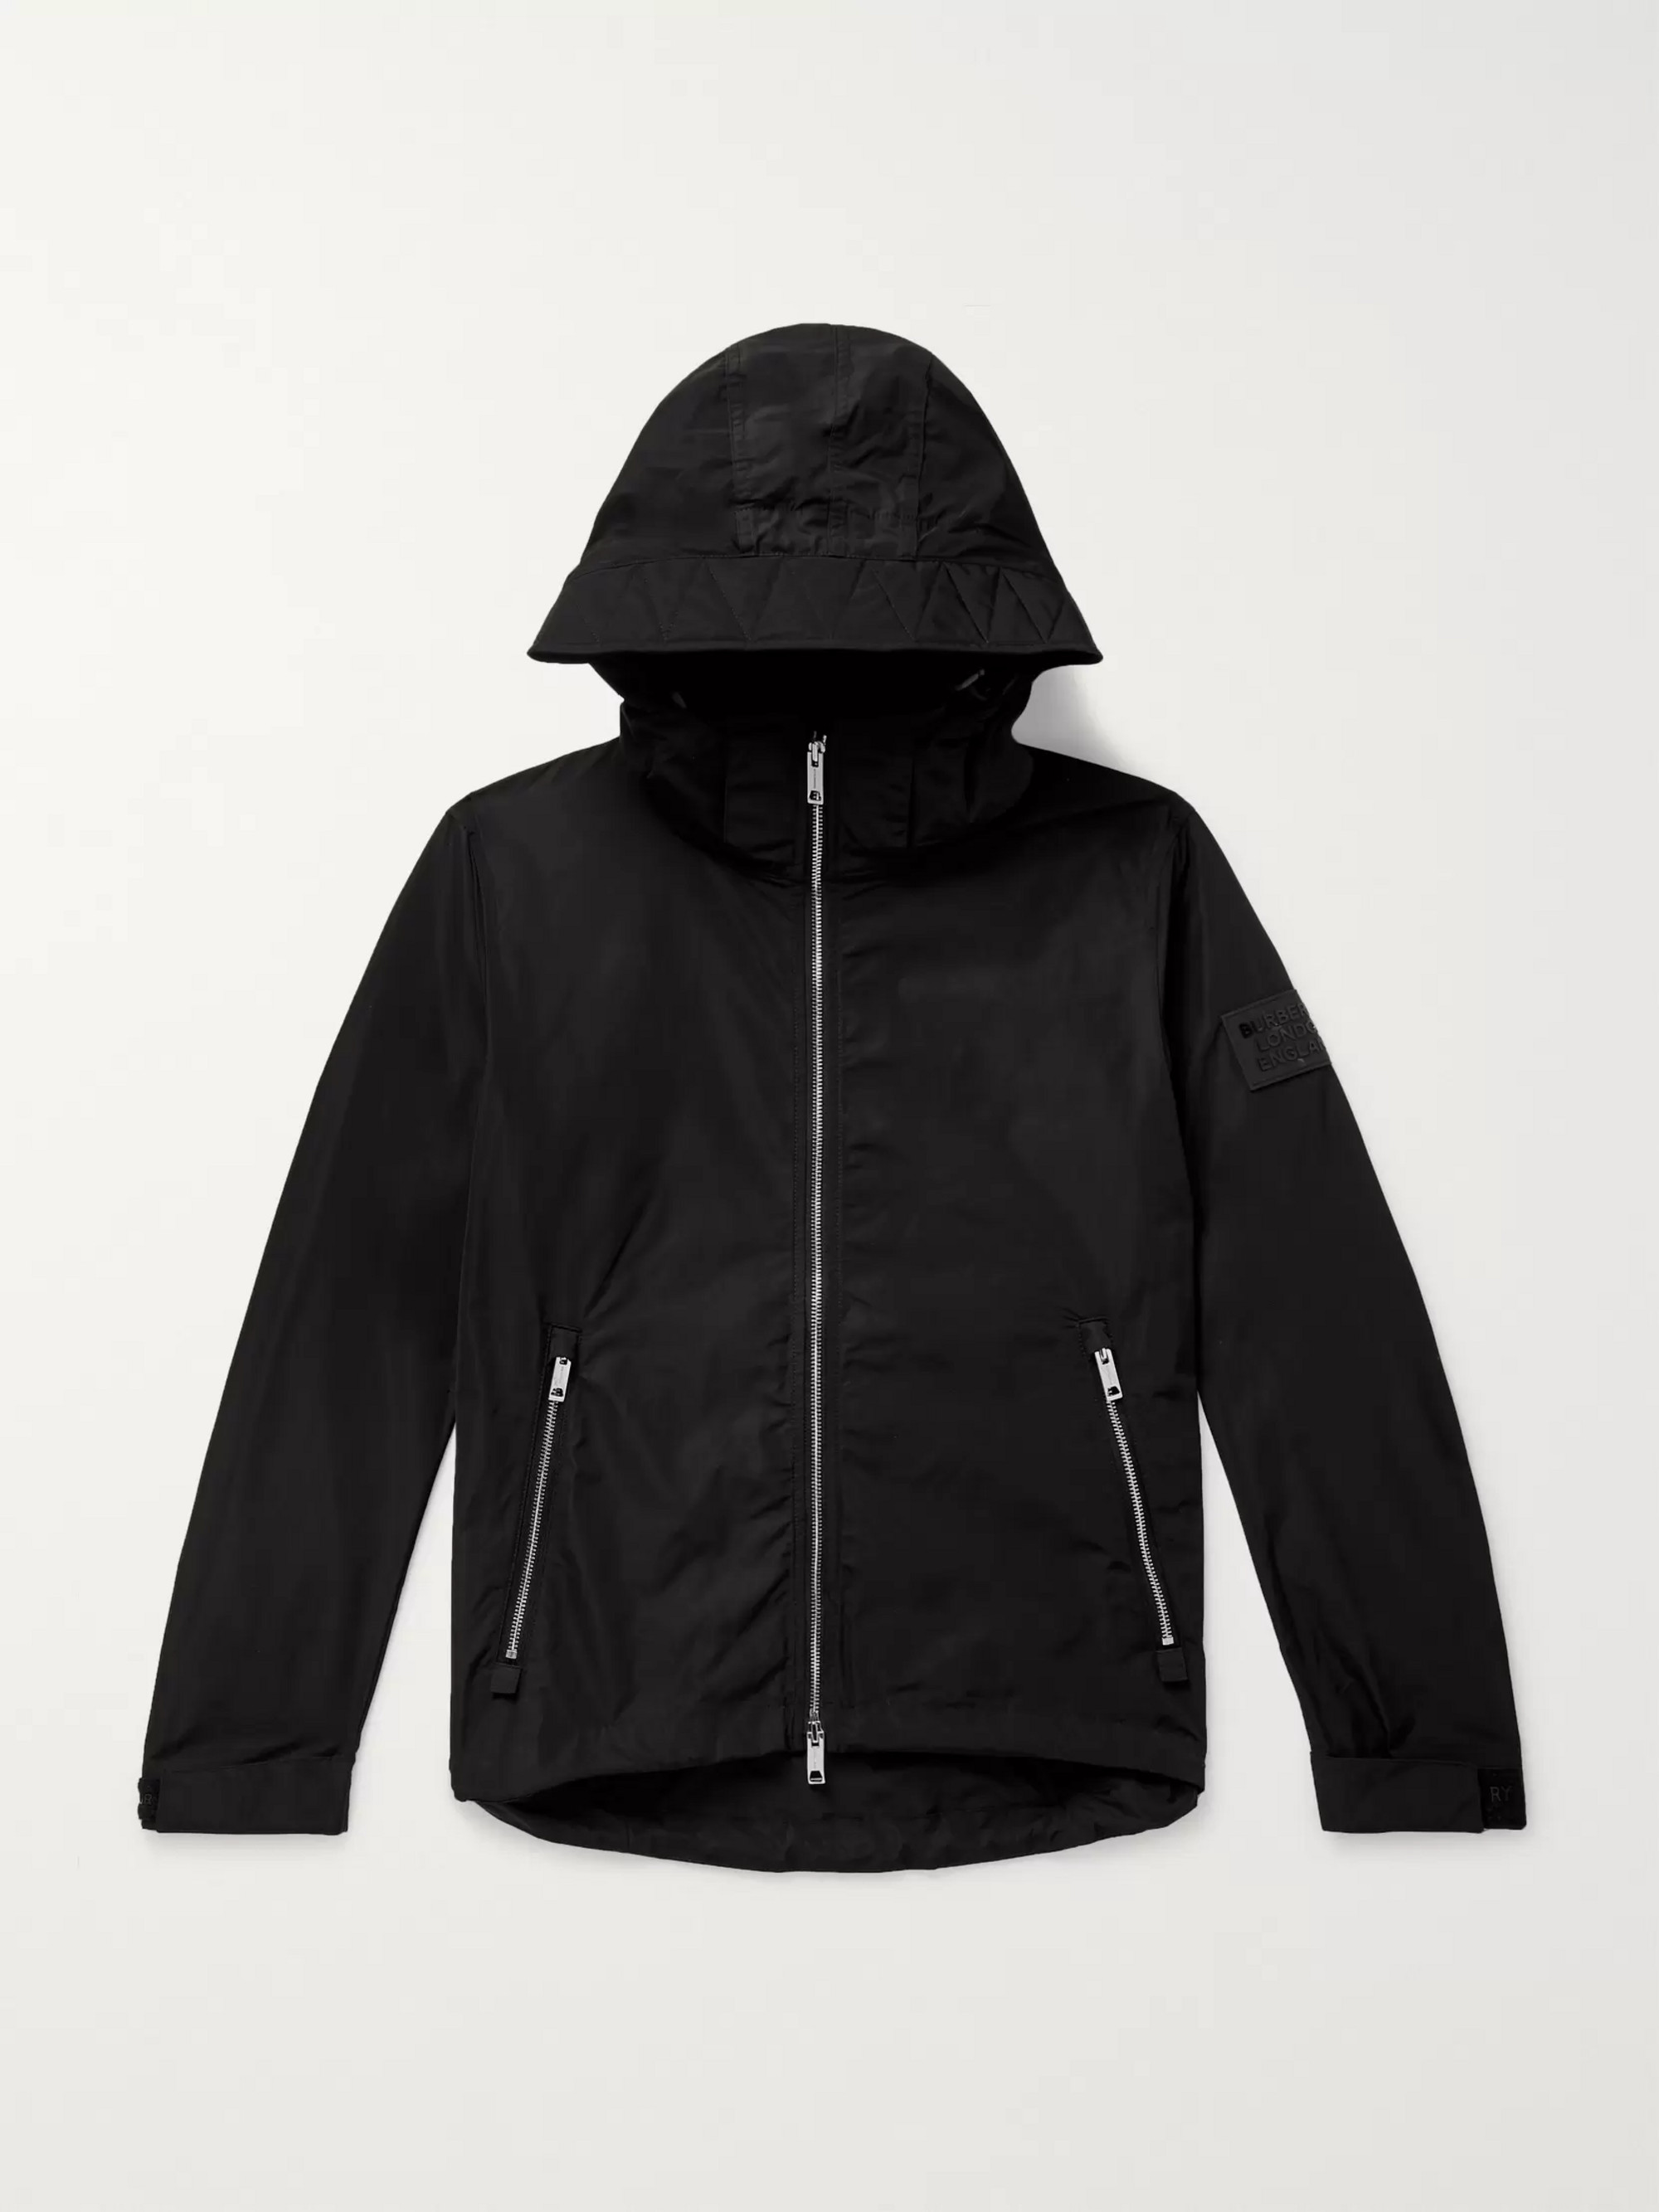 Burberry Loqo-Appliquéd Shell Hooded Jacket